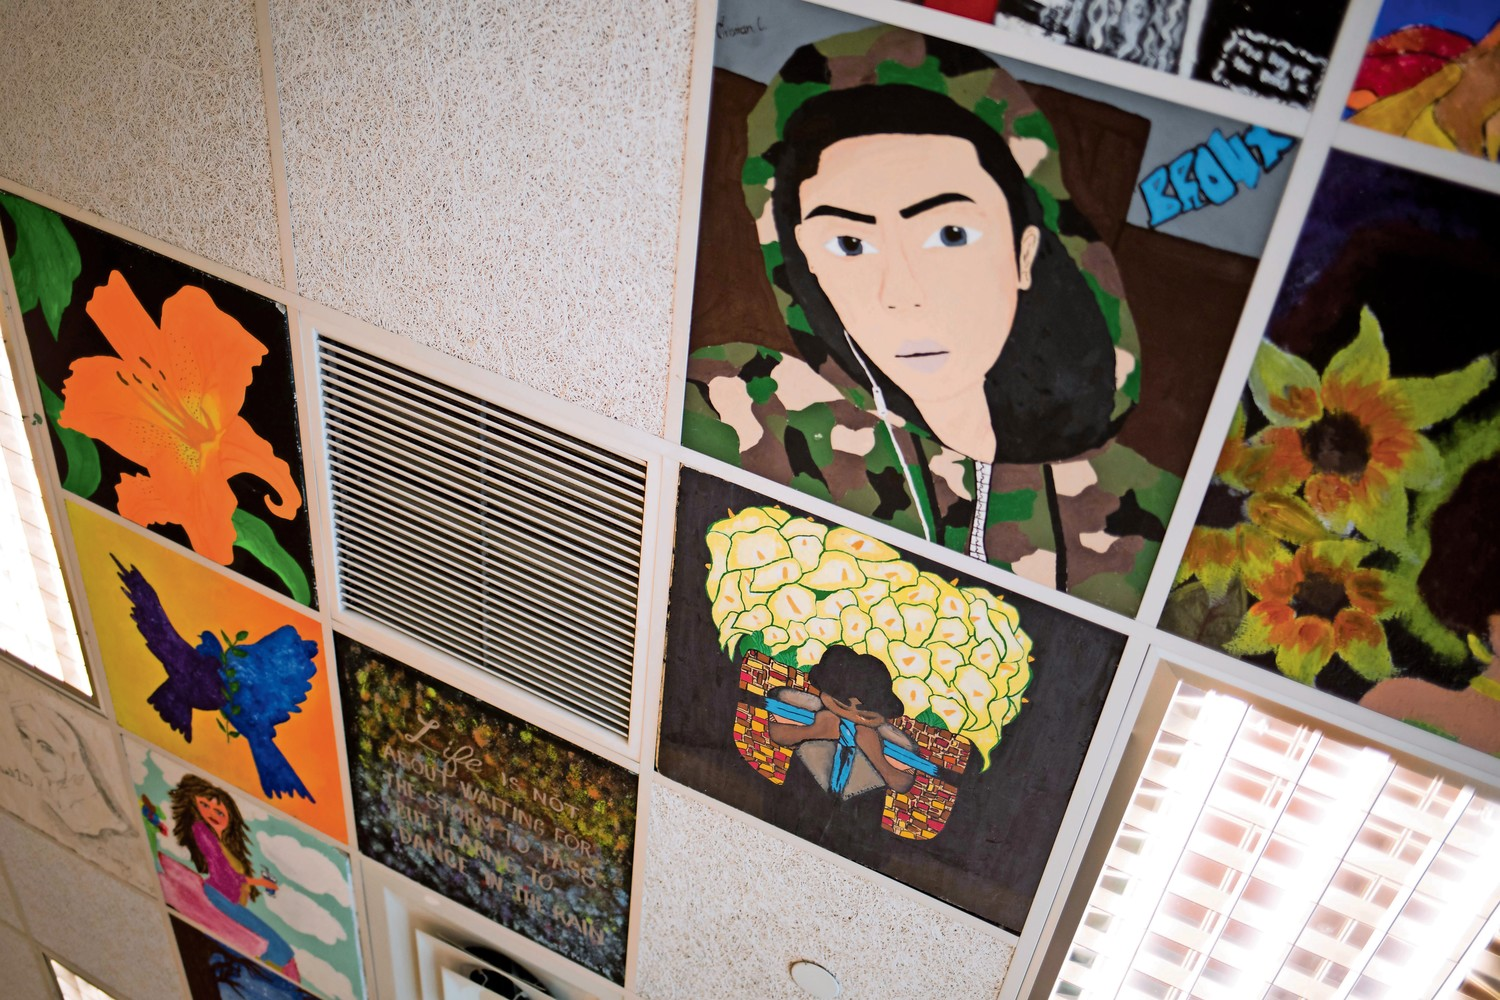 One of Bruno Santini's artistic legacies at IN-Tech Academy is the painting of ceiling tiles that can be found throughout the school. In his classes, Santini offered students the opportunity to create a tile during any given marking period, which would exempt them from a regular assignment.